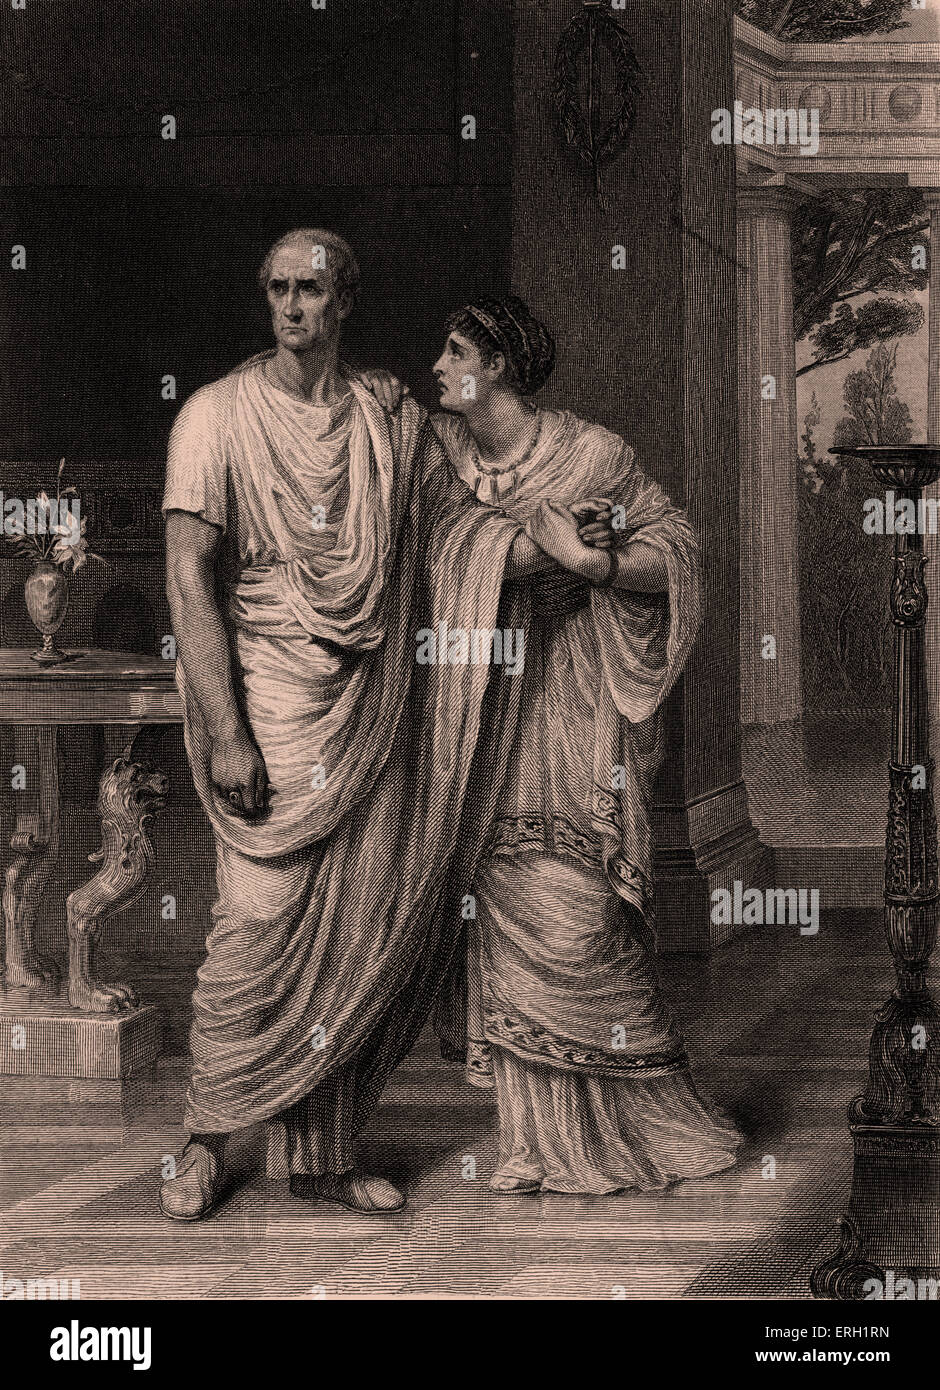 calphurnia and decius trying to persuade caesar to adhere to their sides in the play julius caesar b Gaius julius caesar (classical latin: [ˈɡaːiʊs ˈjuːlɪʊs ˈkajsar], july 100 bc - 15 march 44 bc) was a roman general, statesman, consul and notable author of latin prose he played a critical role in the events that led to the demise of the roman republic and the rise of the roman empire.